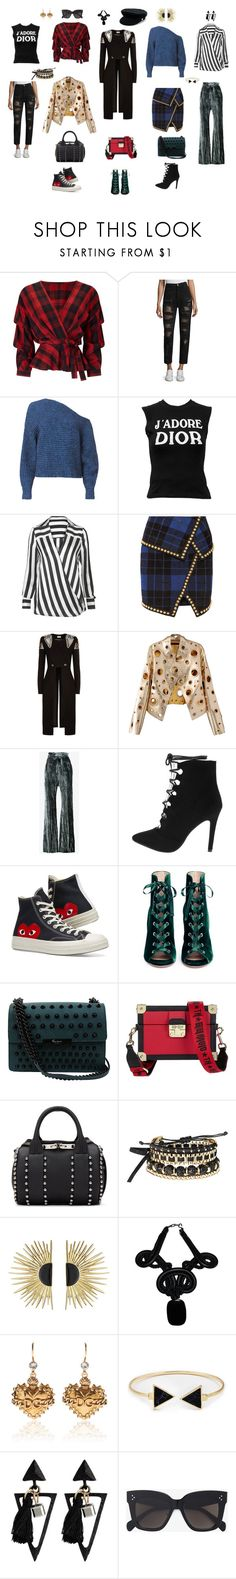 """Drama set"" by akmaral-mail on Polyvore featuring мода, Miss Selfridge, Tommy Hilfiger, T By Alexander Wang, Christian Dior, Balmain, Temperley London, WithChic, Ann Demeulemeester и Converse"